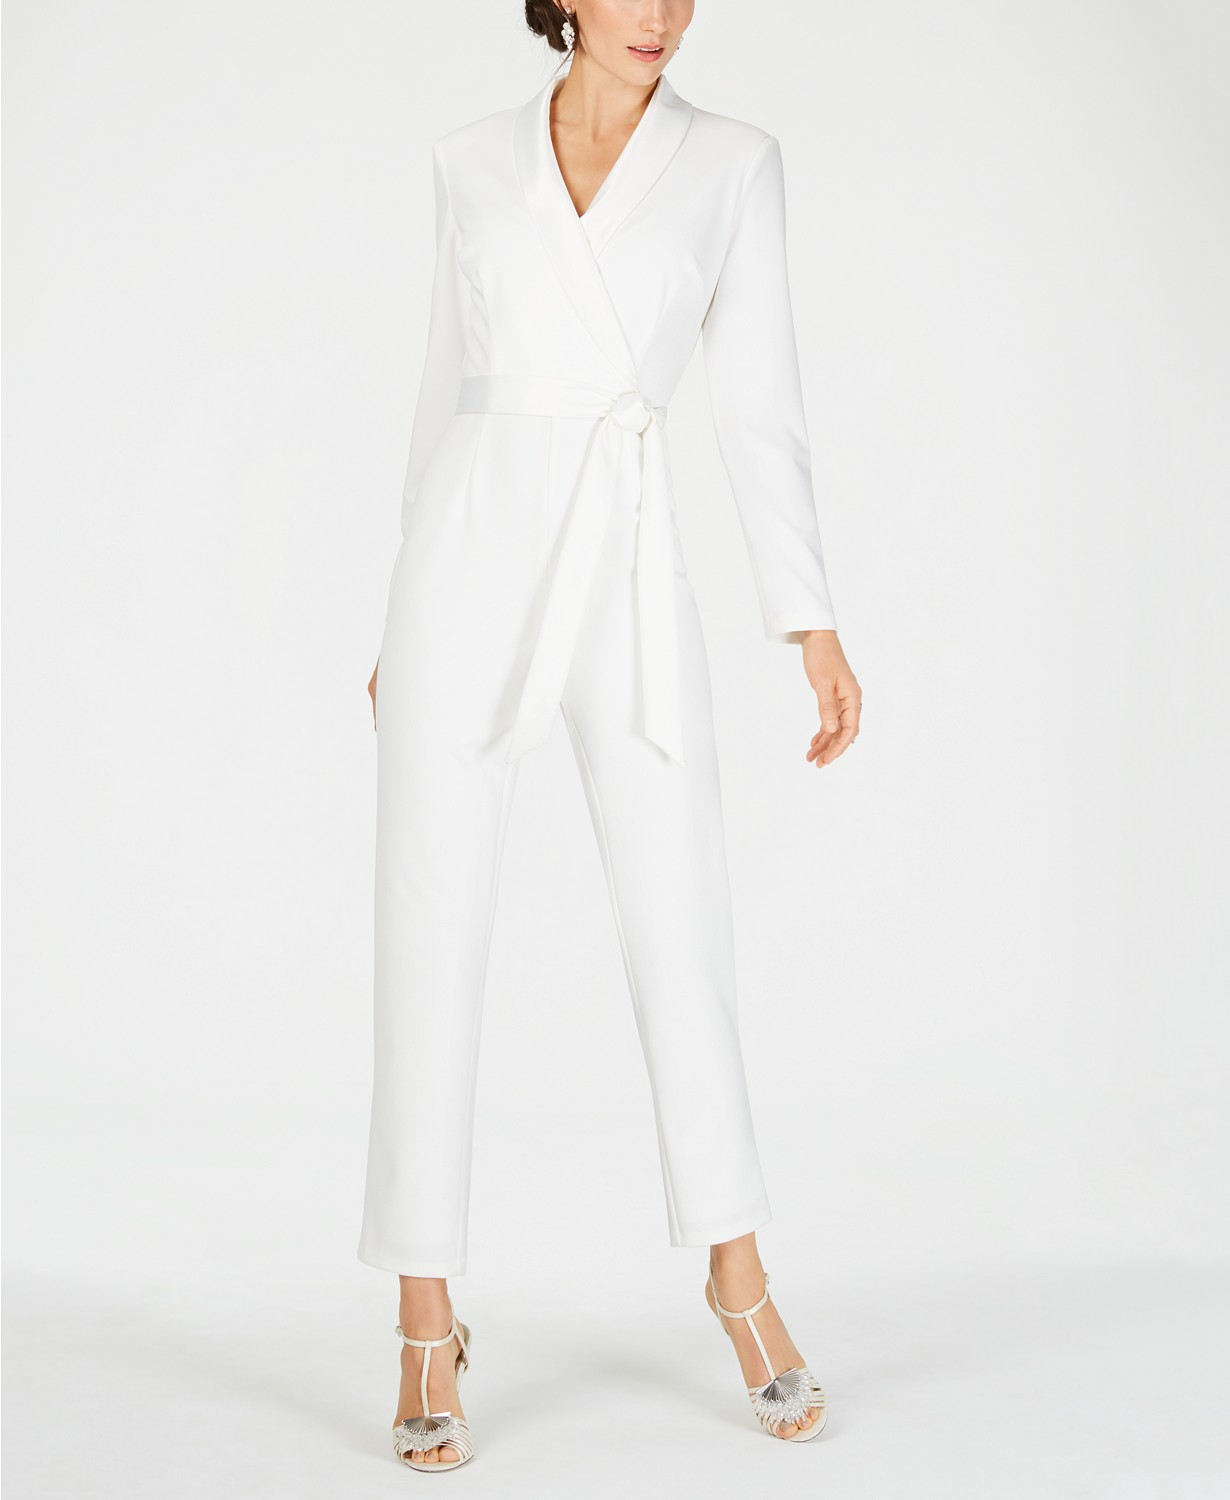 Adrianna Papell Tuxedo Jumpsuit In White